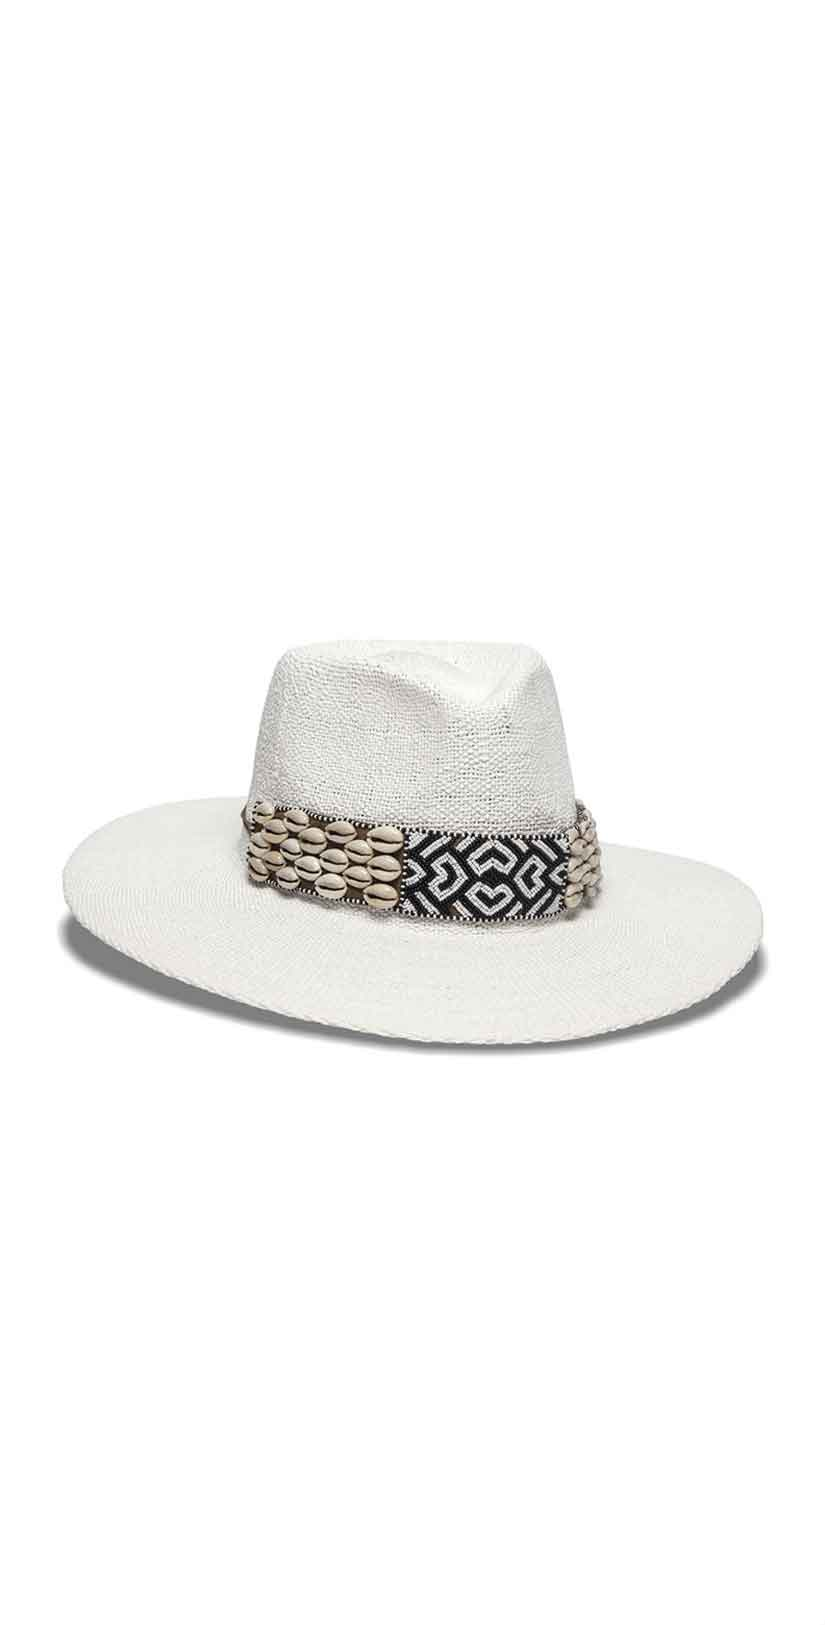 Nikki Beach Amico Hat in Black and White: